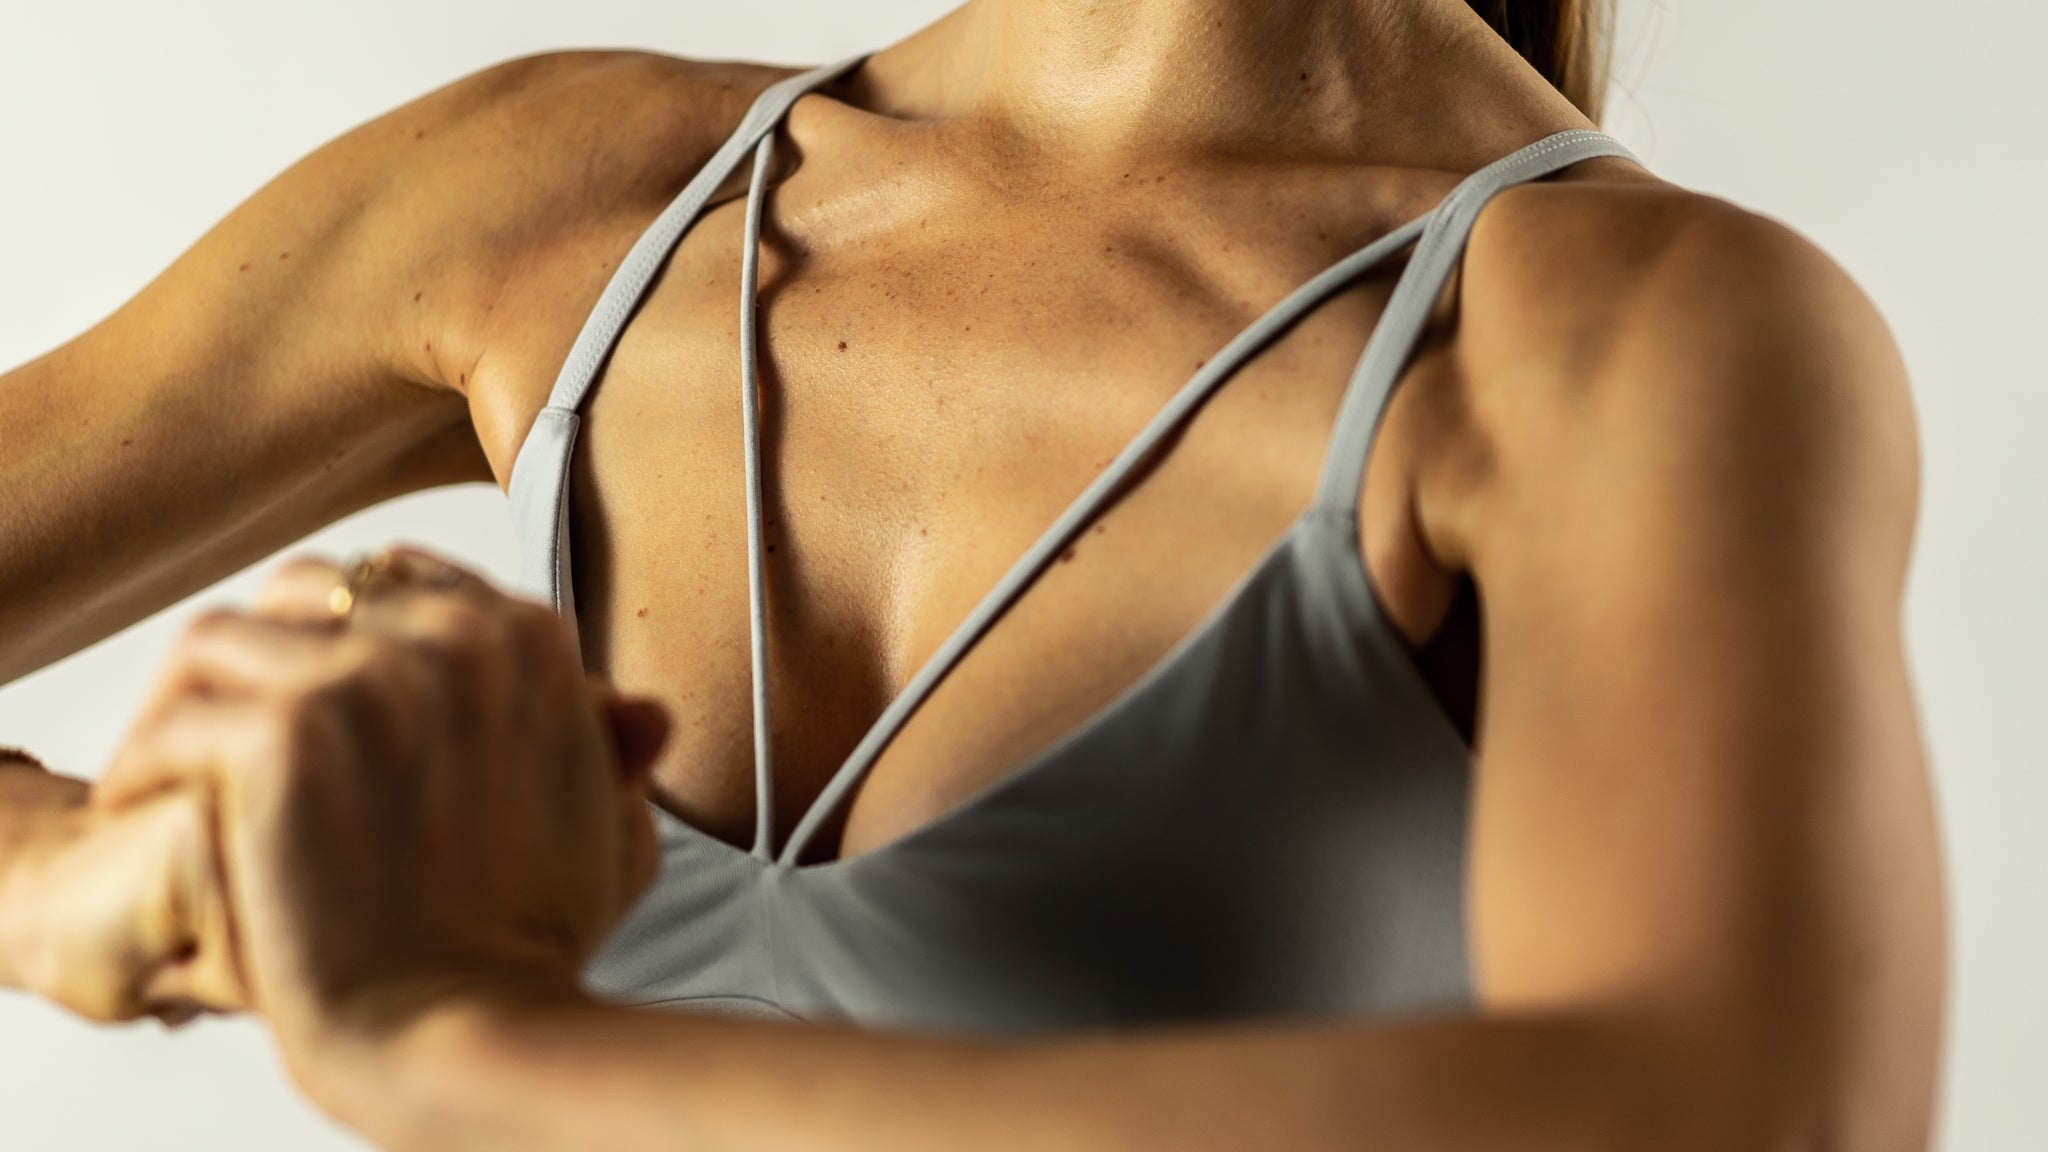 Armed & Ready: 3 Moves to Tone the Underarm